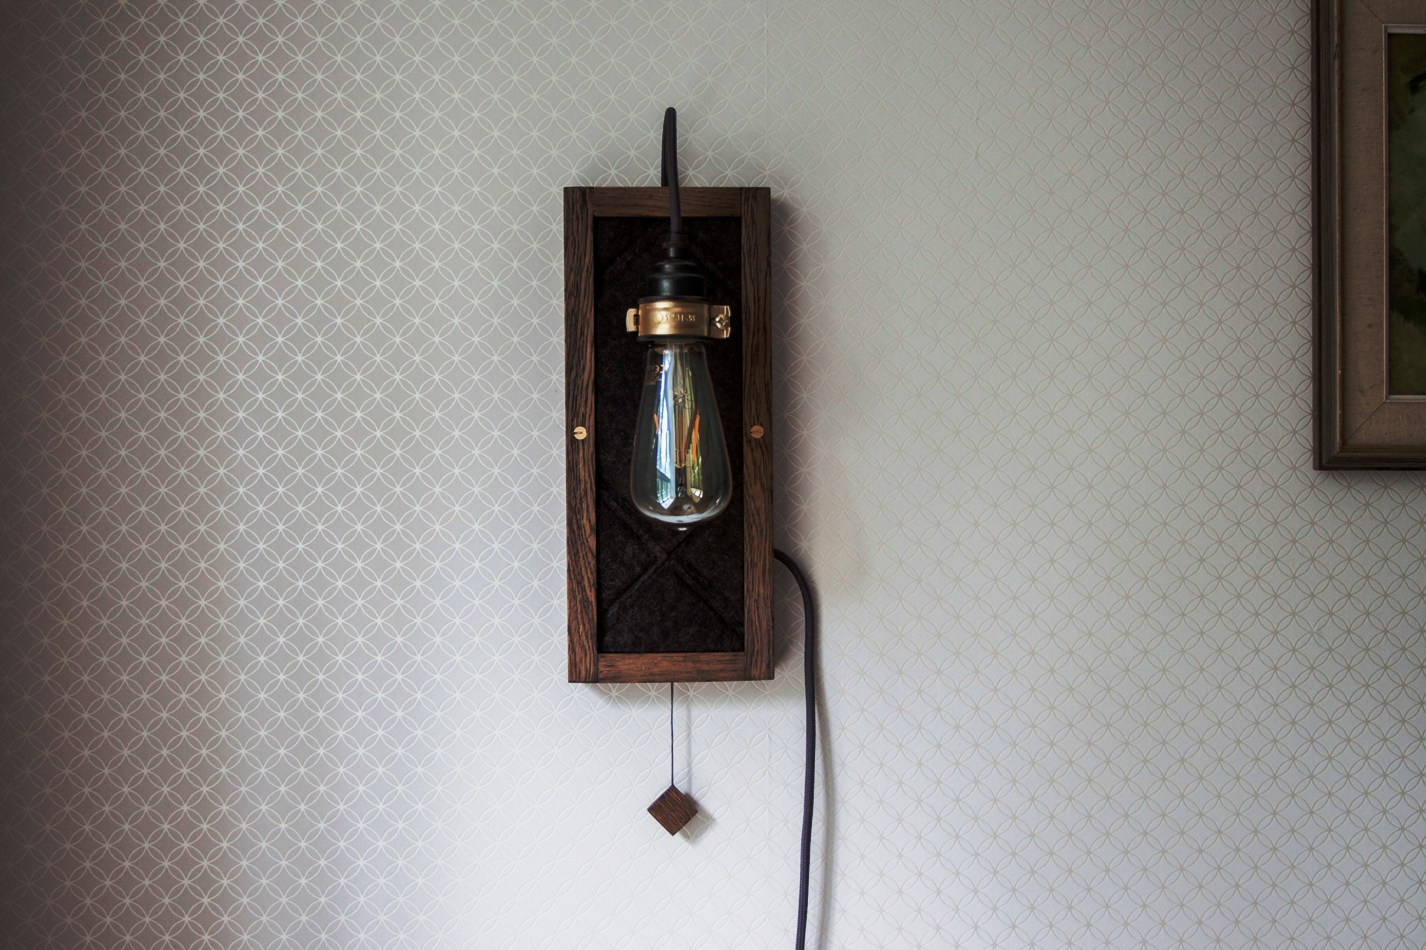 wall light lamp valgusti simone craftfurn